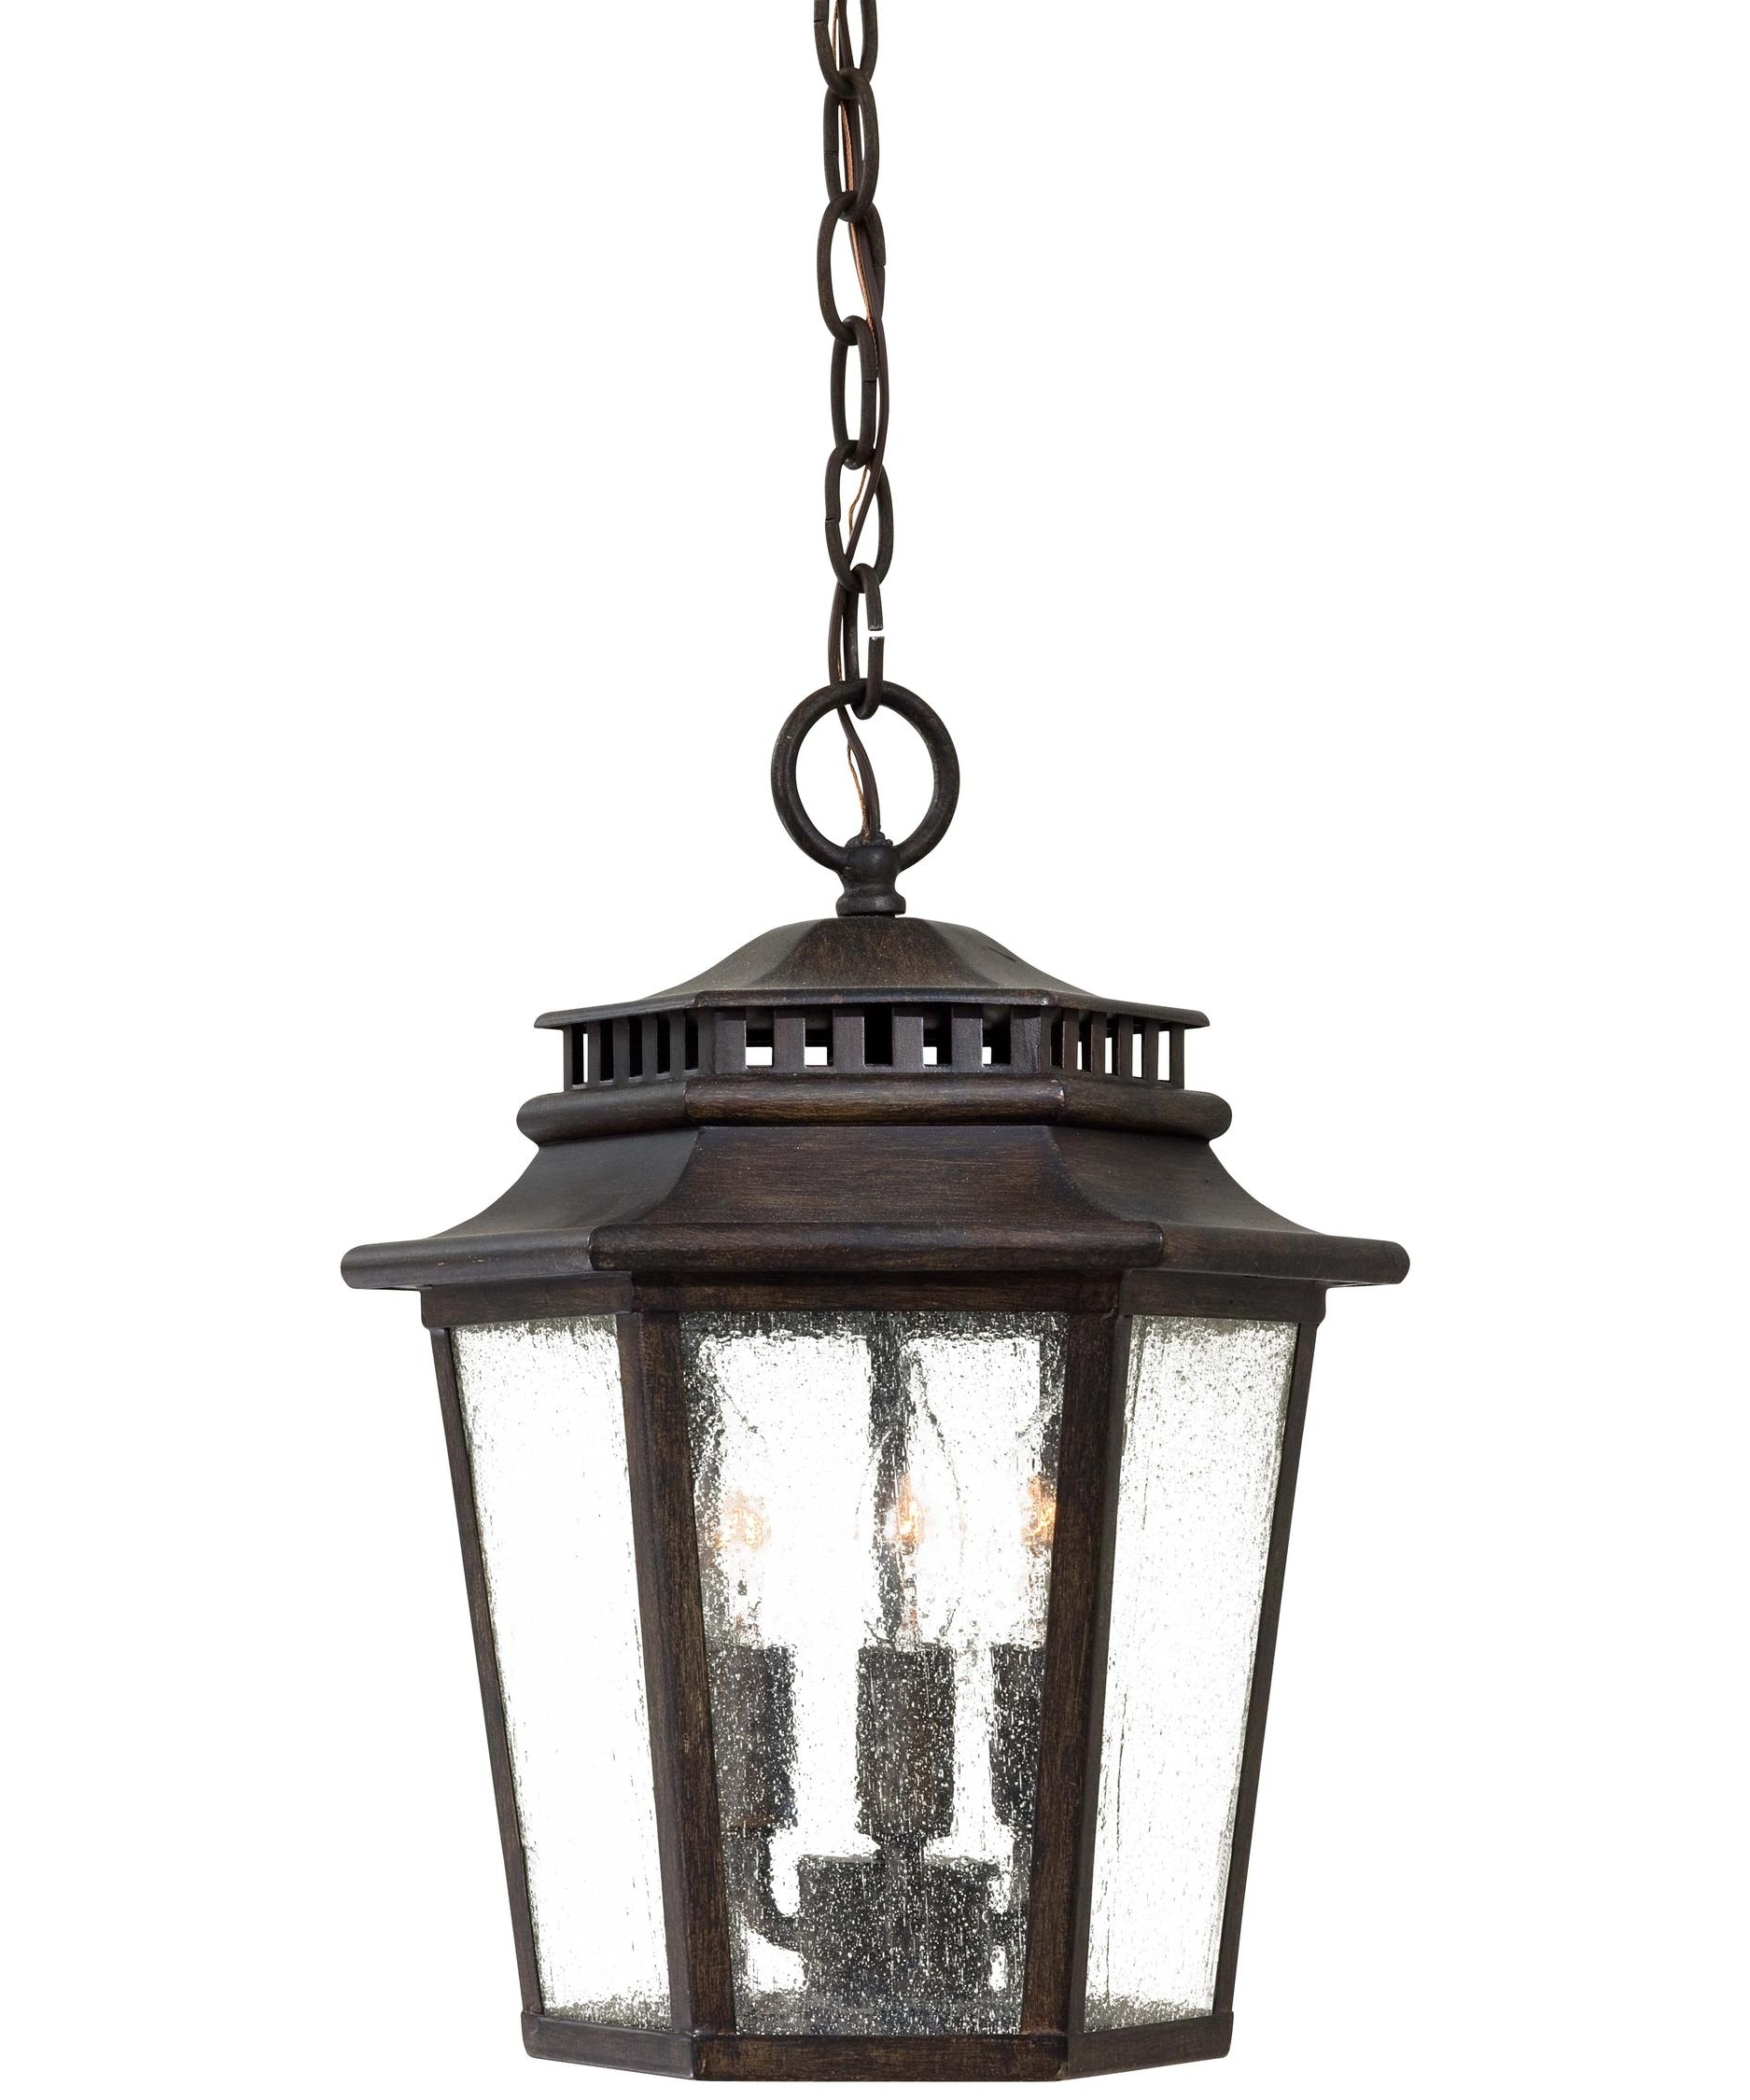 Large Hanging Outdoor Lights – Outdoor Designs Regarding Most Up To Date Outdoor Hanging Porch Lights (View 4 of 20)